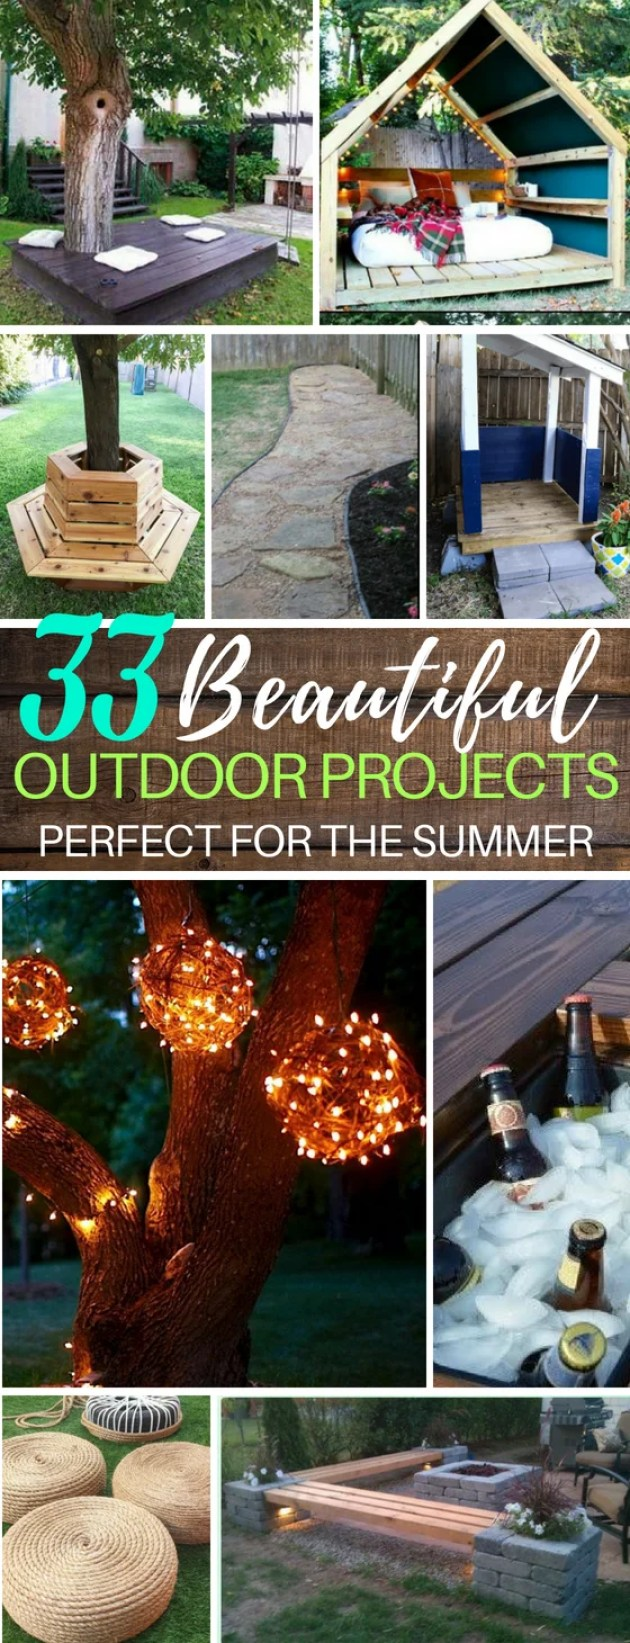 33 DIY Backyard Summer Projects You Can Try Today | DIY Benches | DIY Lights | Fire Pits | Water Park Backyard